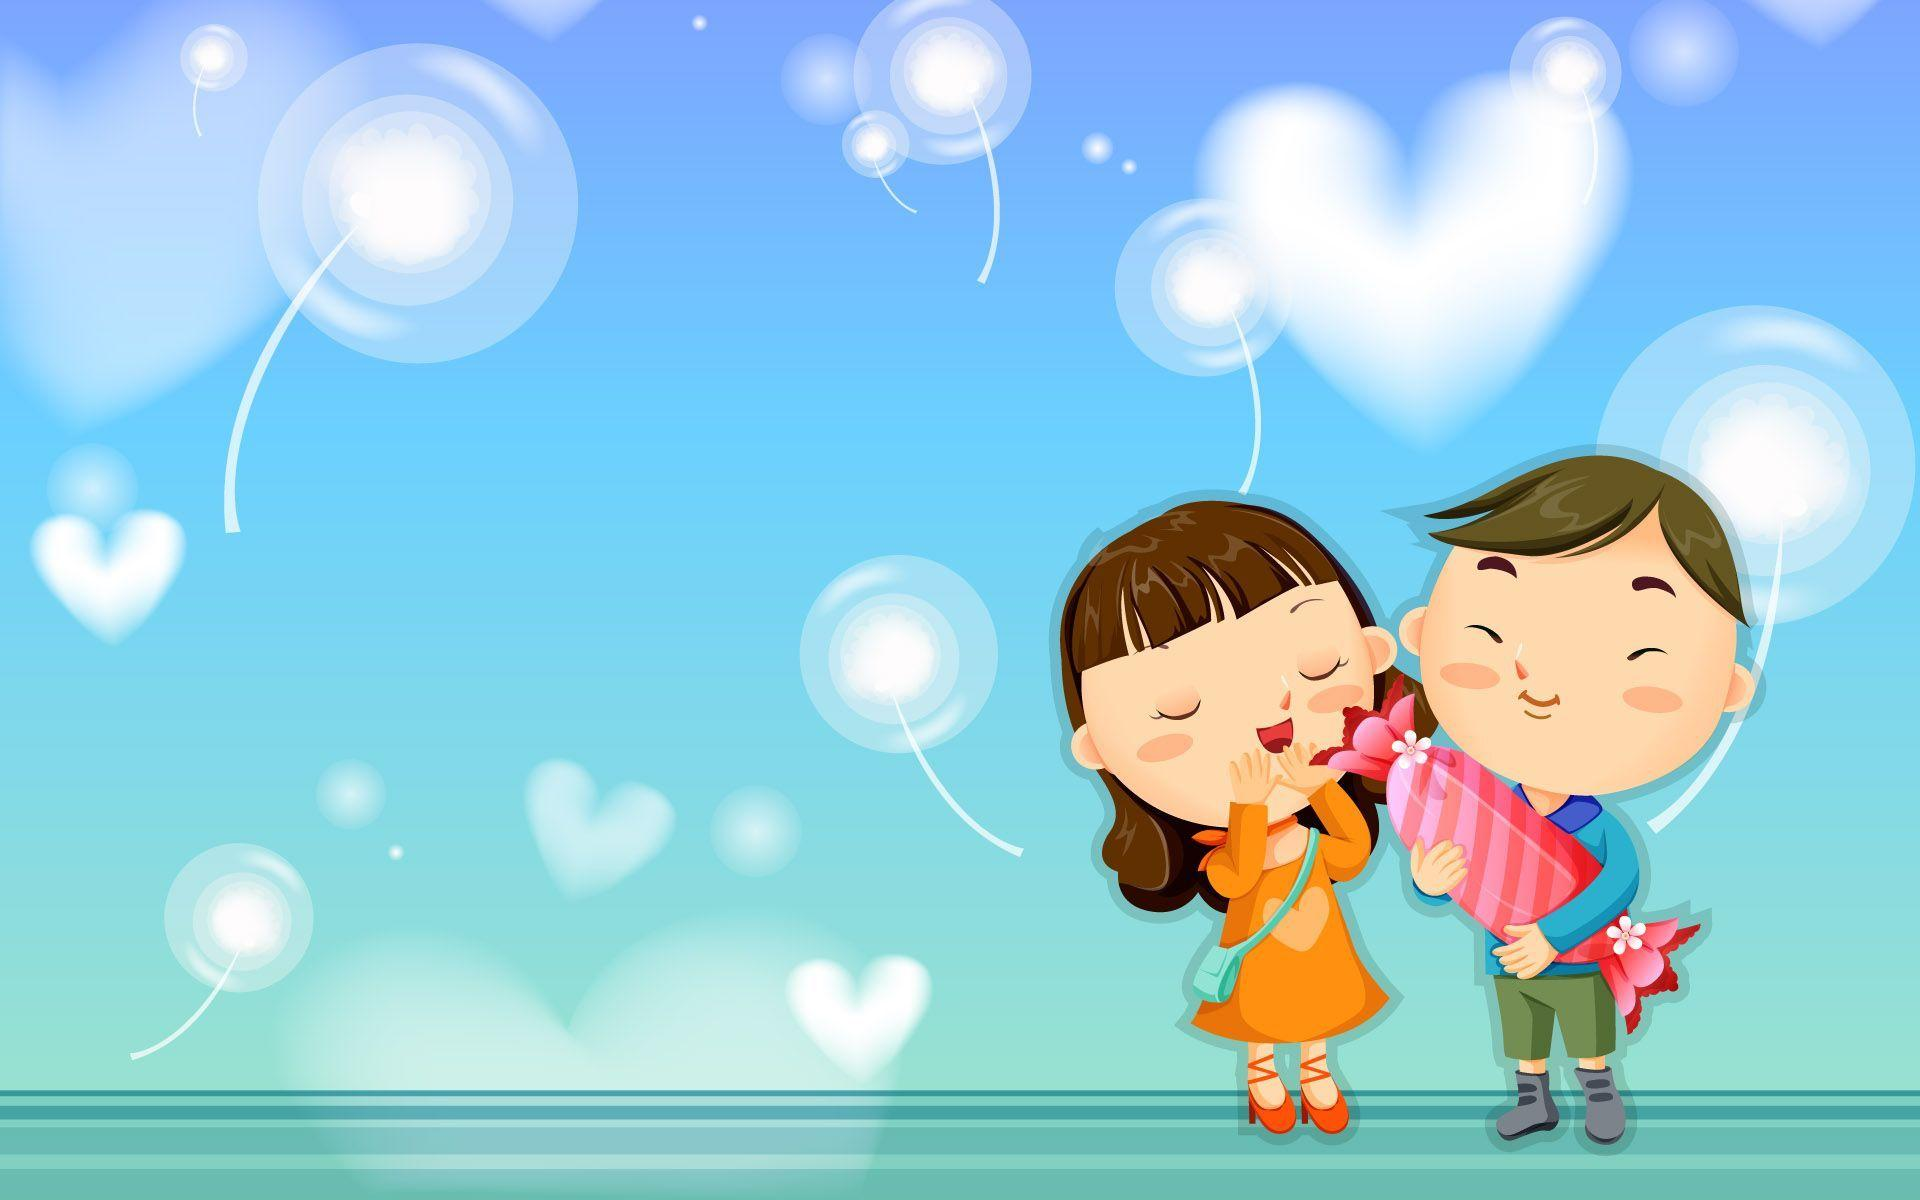 Love U cartoon Wallpaper : Love cartoon Wallpapers - Wallpaper cave